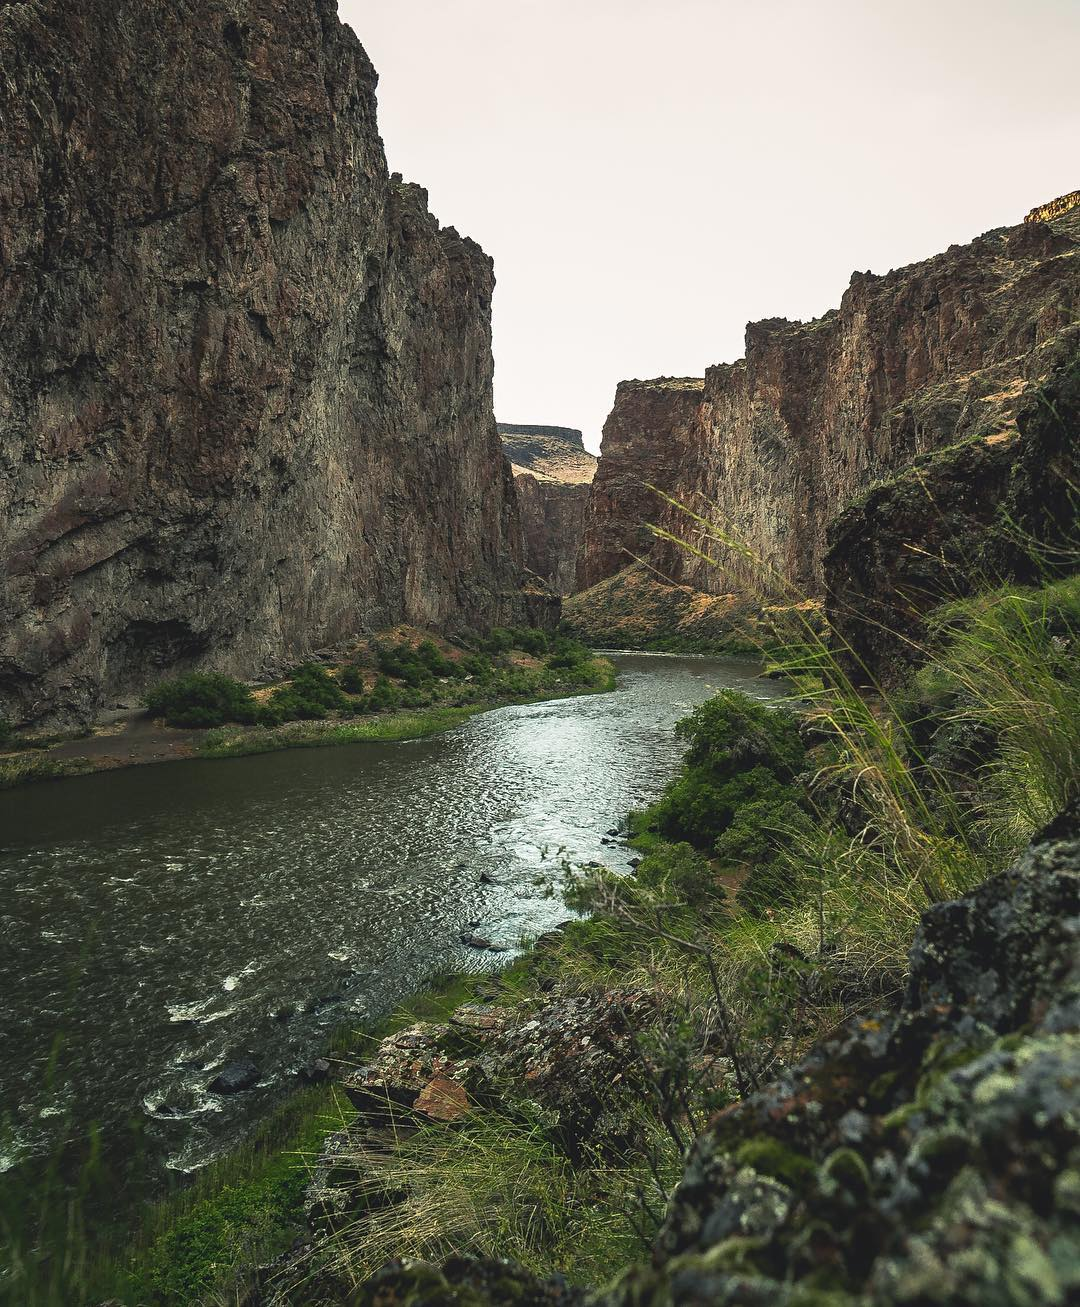 Another shot from #AdventureOutpost by @dustykleiner  The Owyhee River (from the older spelling of Hawaii) was named for three Hawaiian trappers who were sent to explore the uncharted river. They failed to return to the rendezvous near the Boise River...